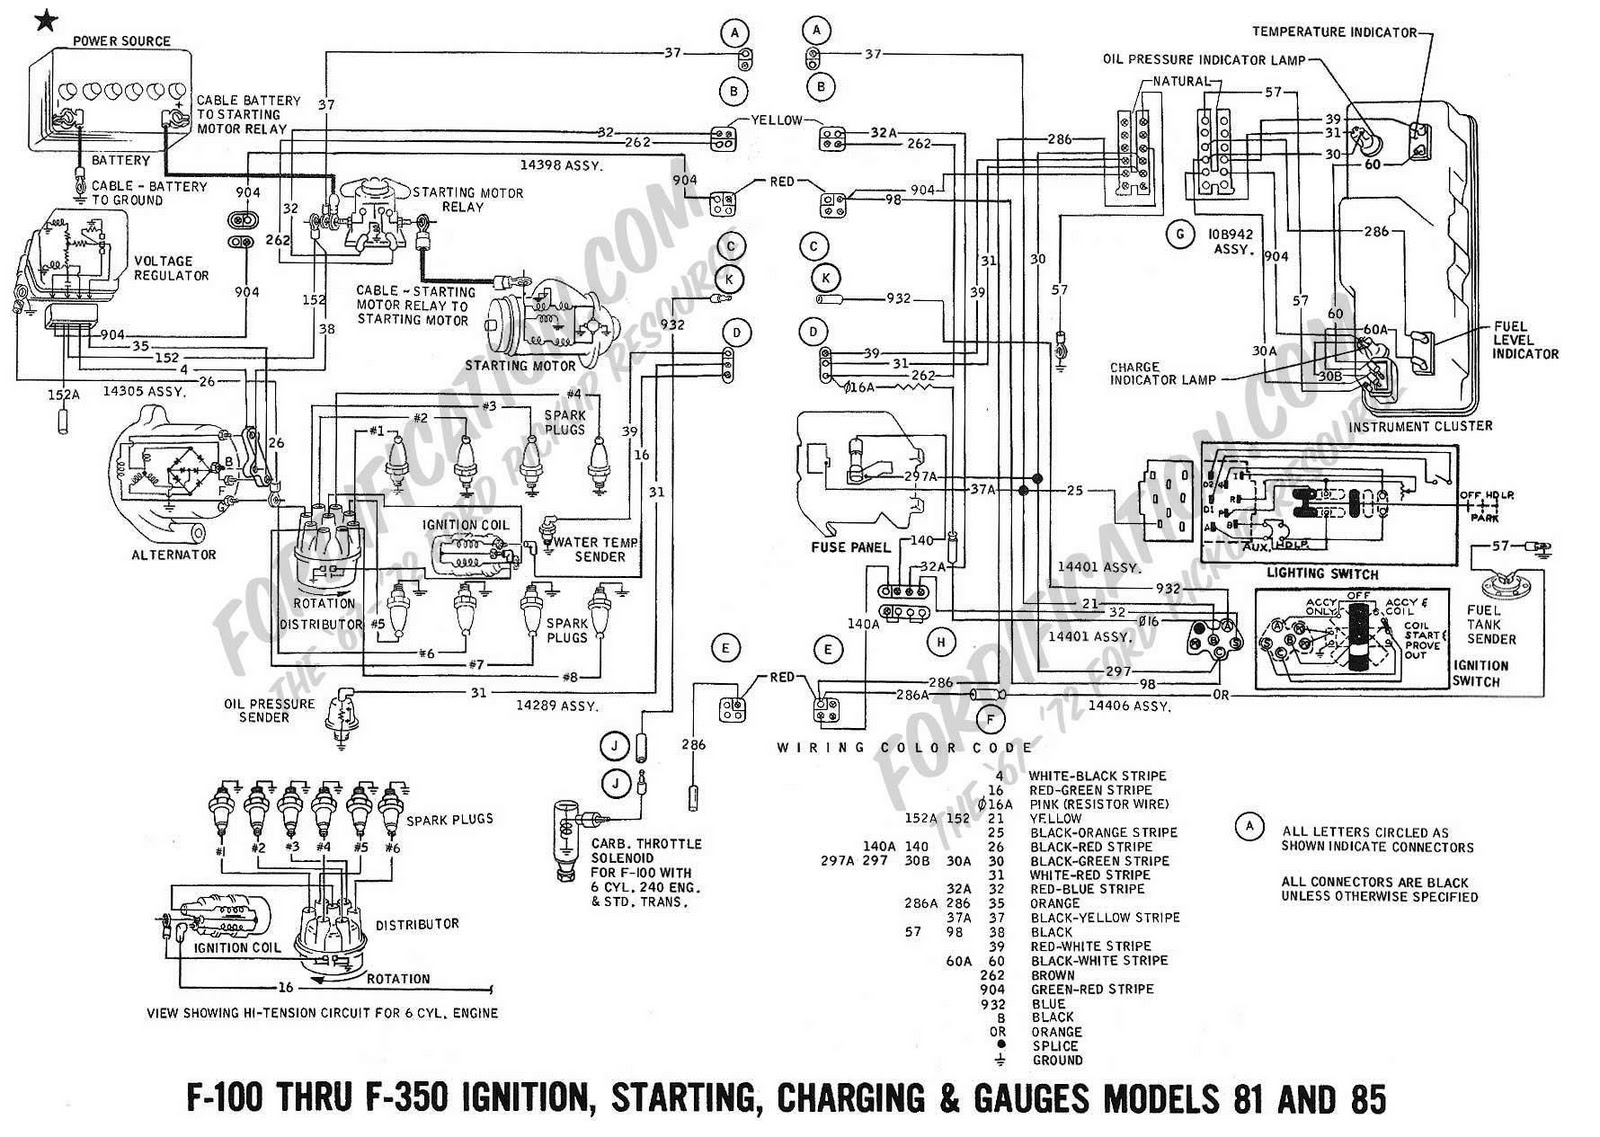 hight resolution of 4 1 haul system diagram wiring schematic wiring diagram schematics boat alternator diagram advantage boats wiring diagram